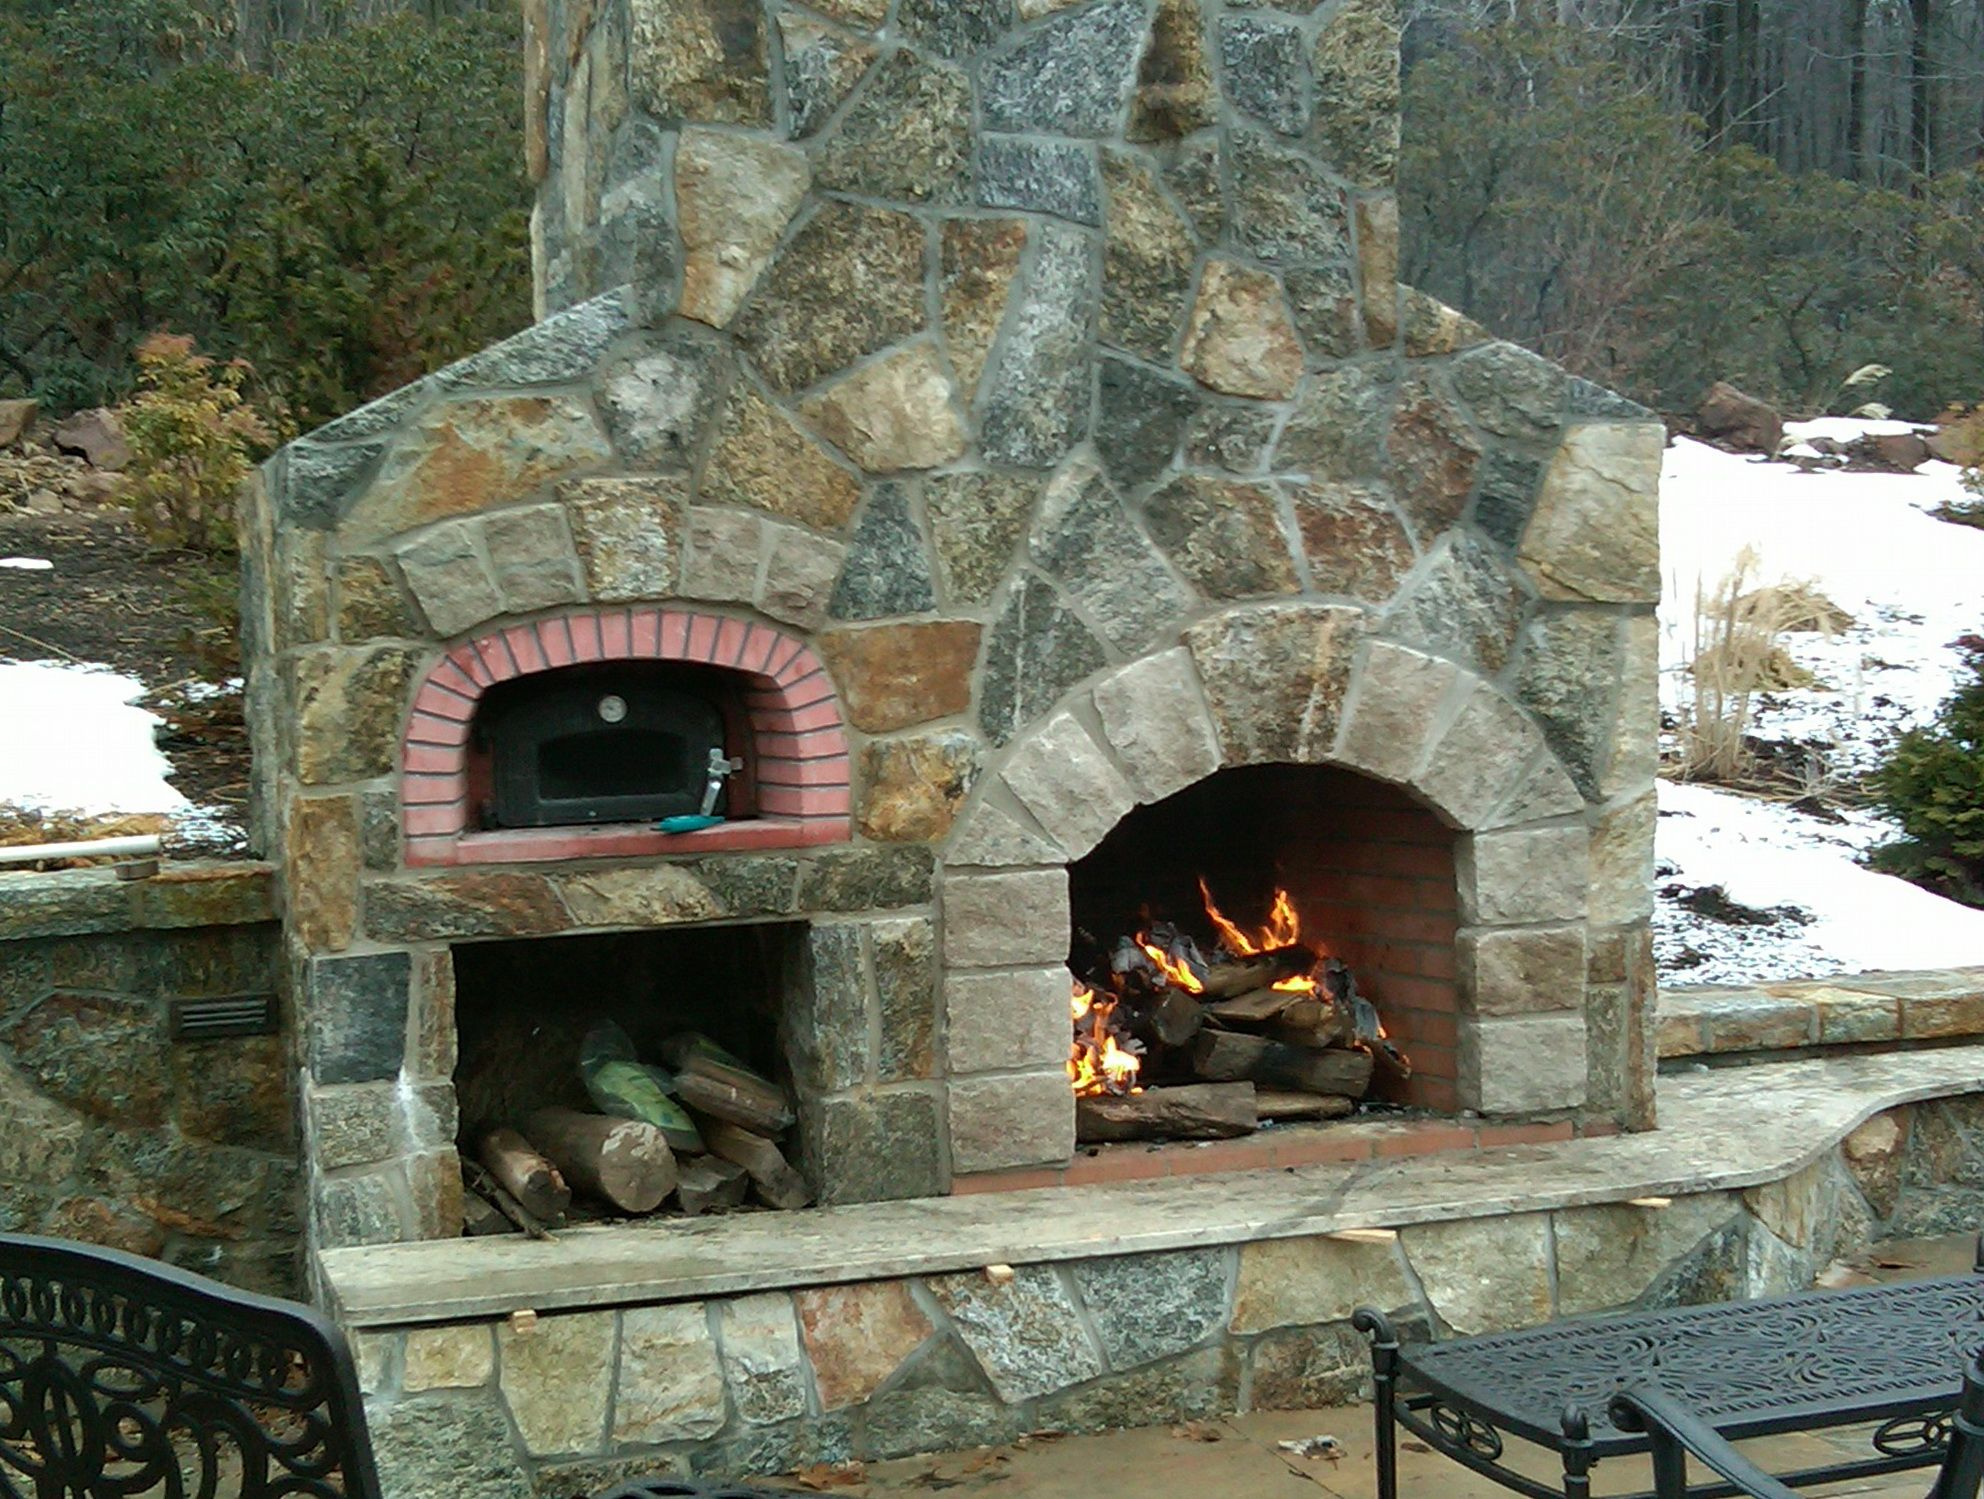 Outdoor Fireplace With Pizza Oven Above Outdoor Fireplace With